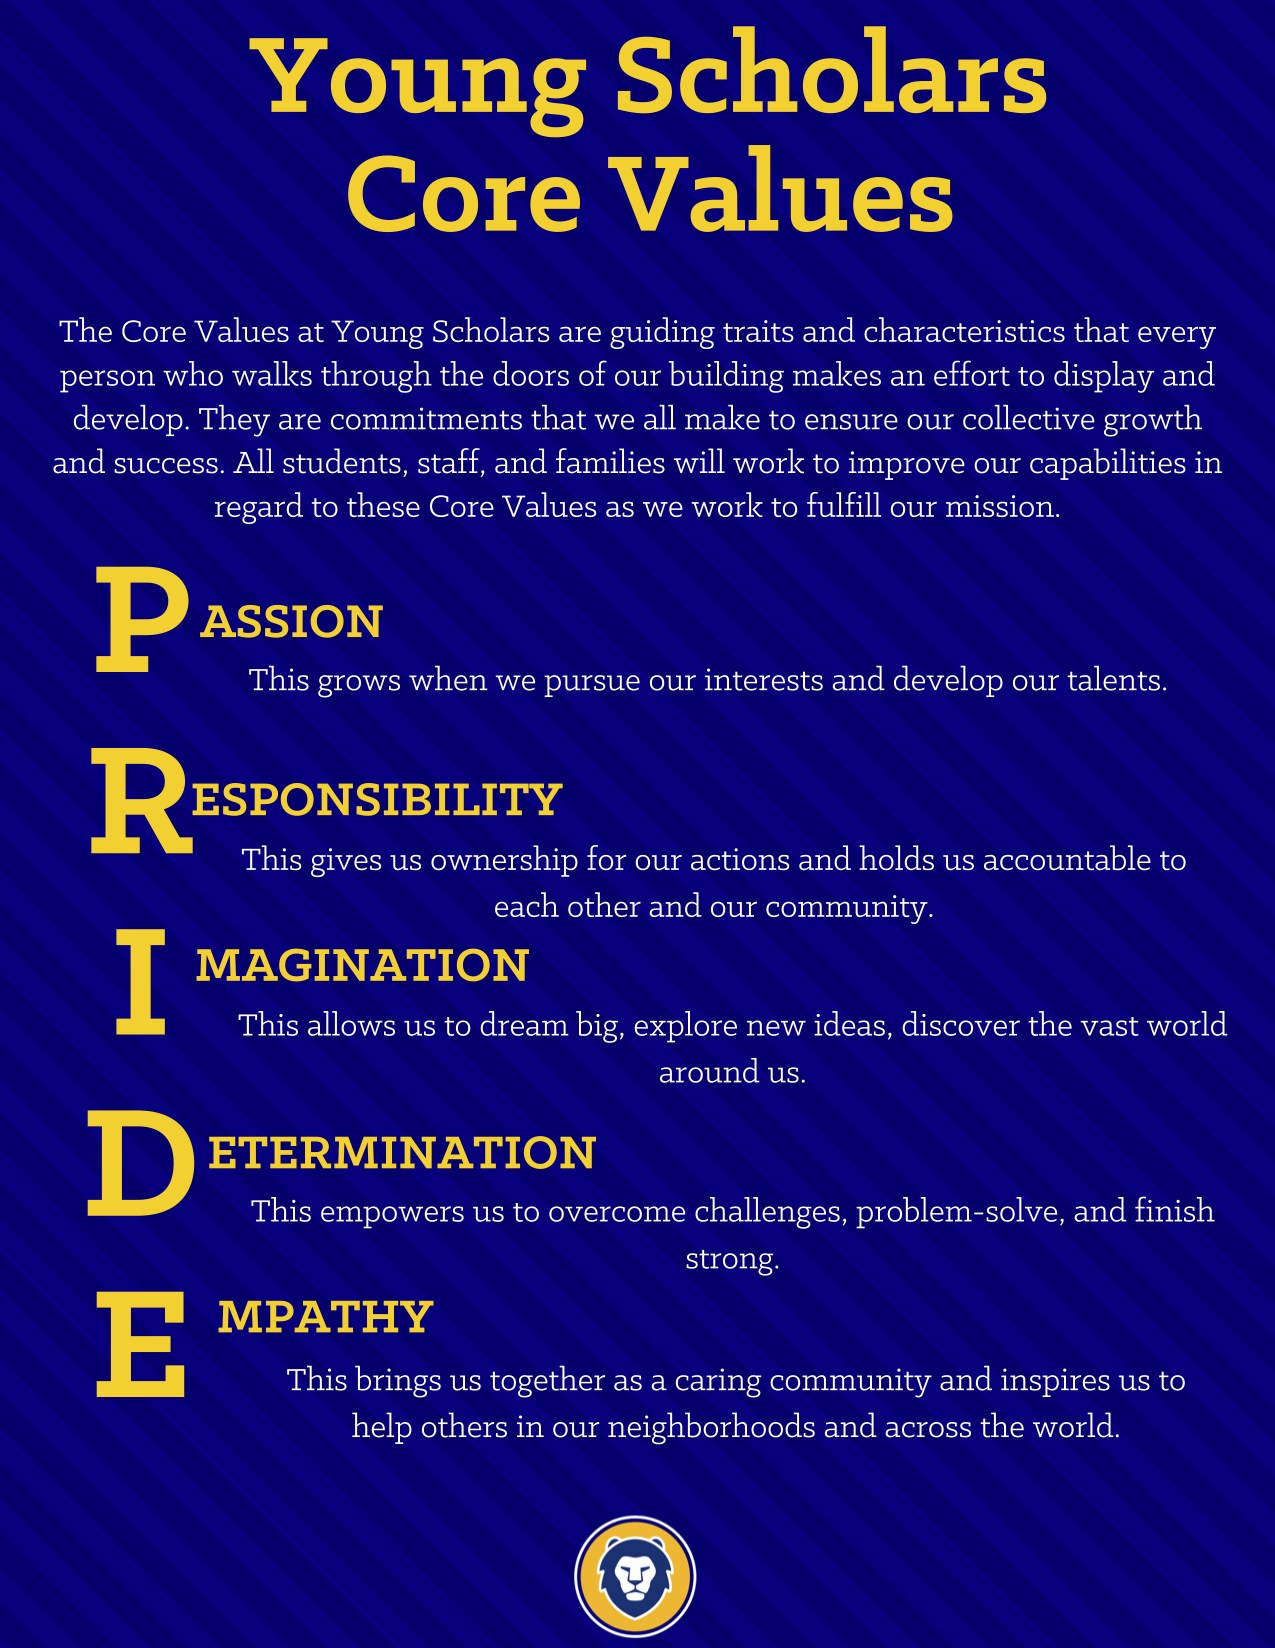 PRIDE: Passion, Responsibility, Imagination, Determination, Empathy